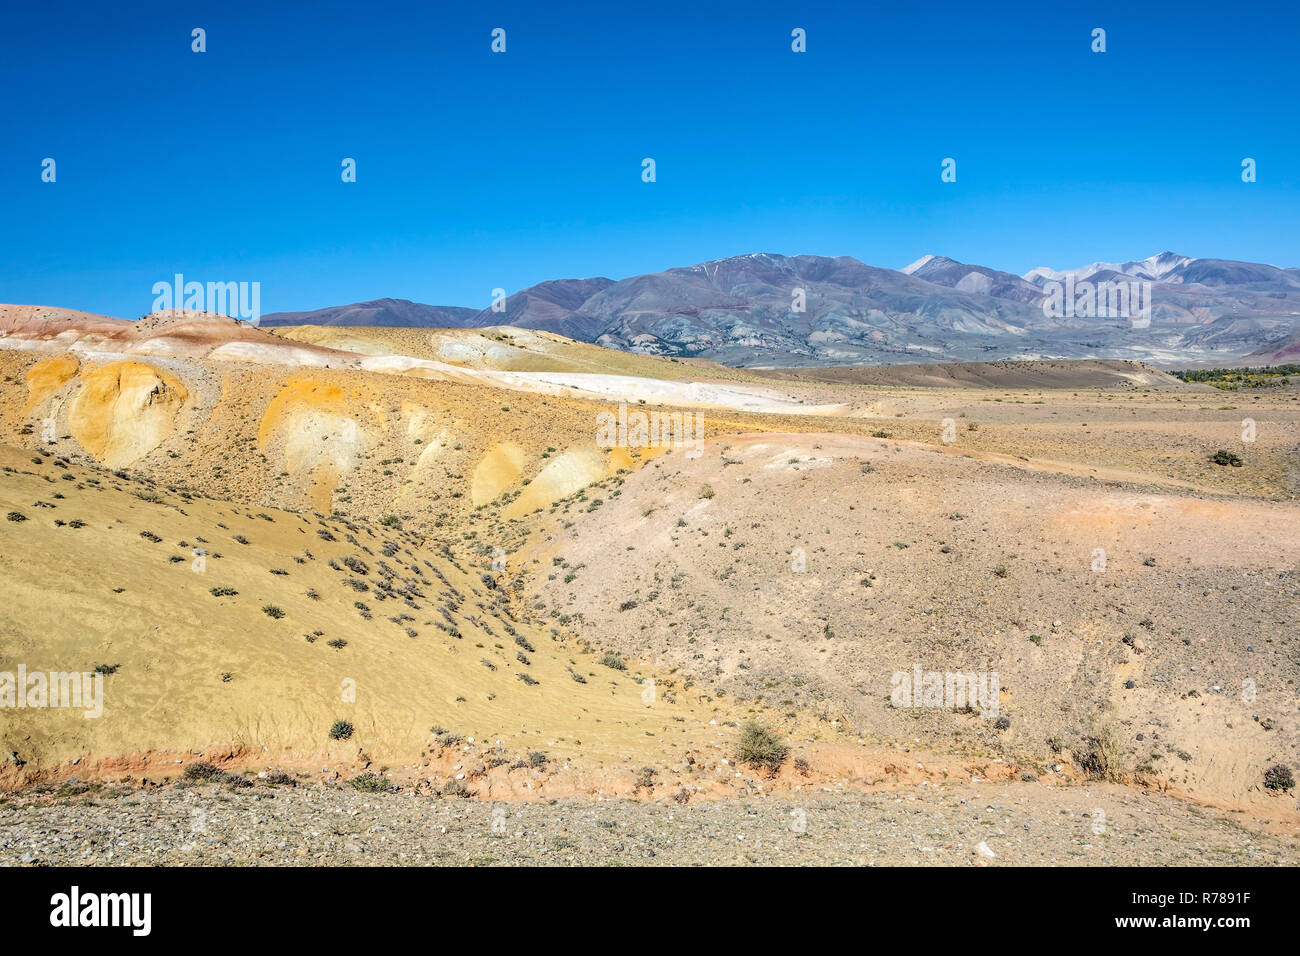 The view of the valley of the Kyzyl-Chin on the South-Chuyskiy ridge mountains, Chuya steppe, Altai mountains - Stock Image